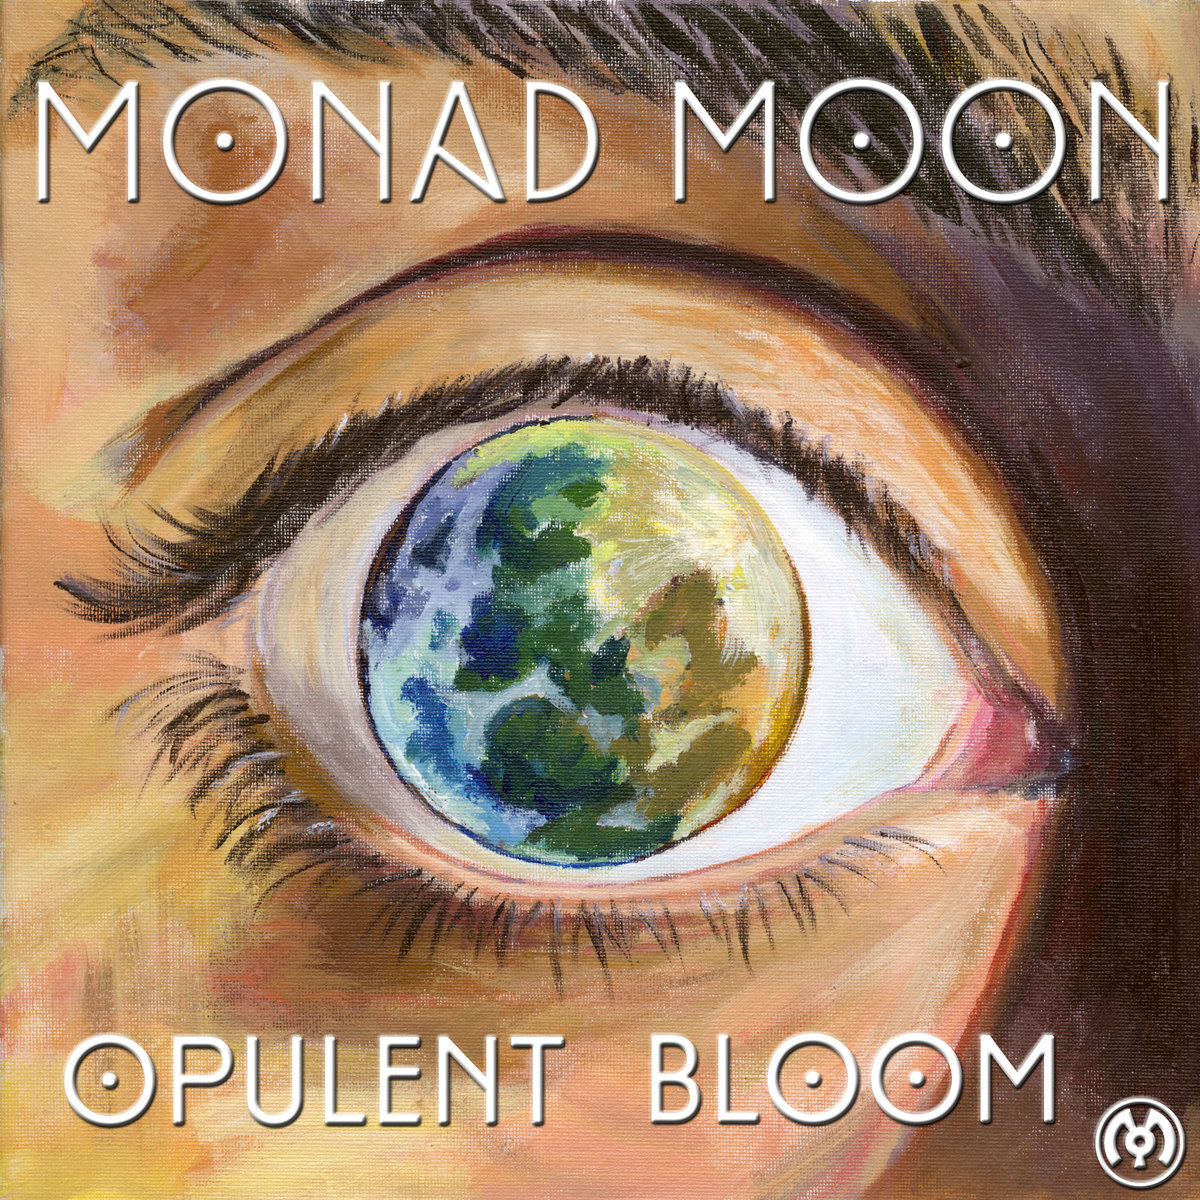 Monad Moon - Opulent Bloom